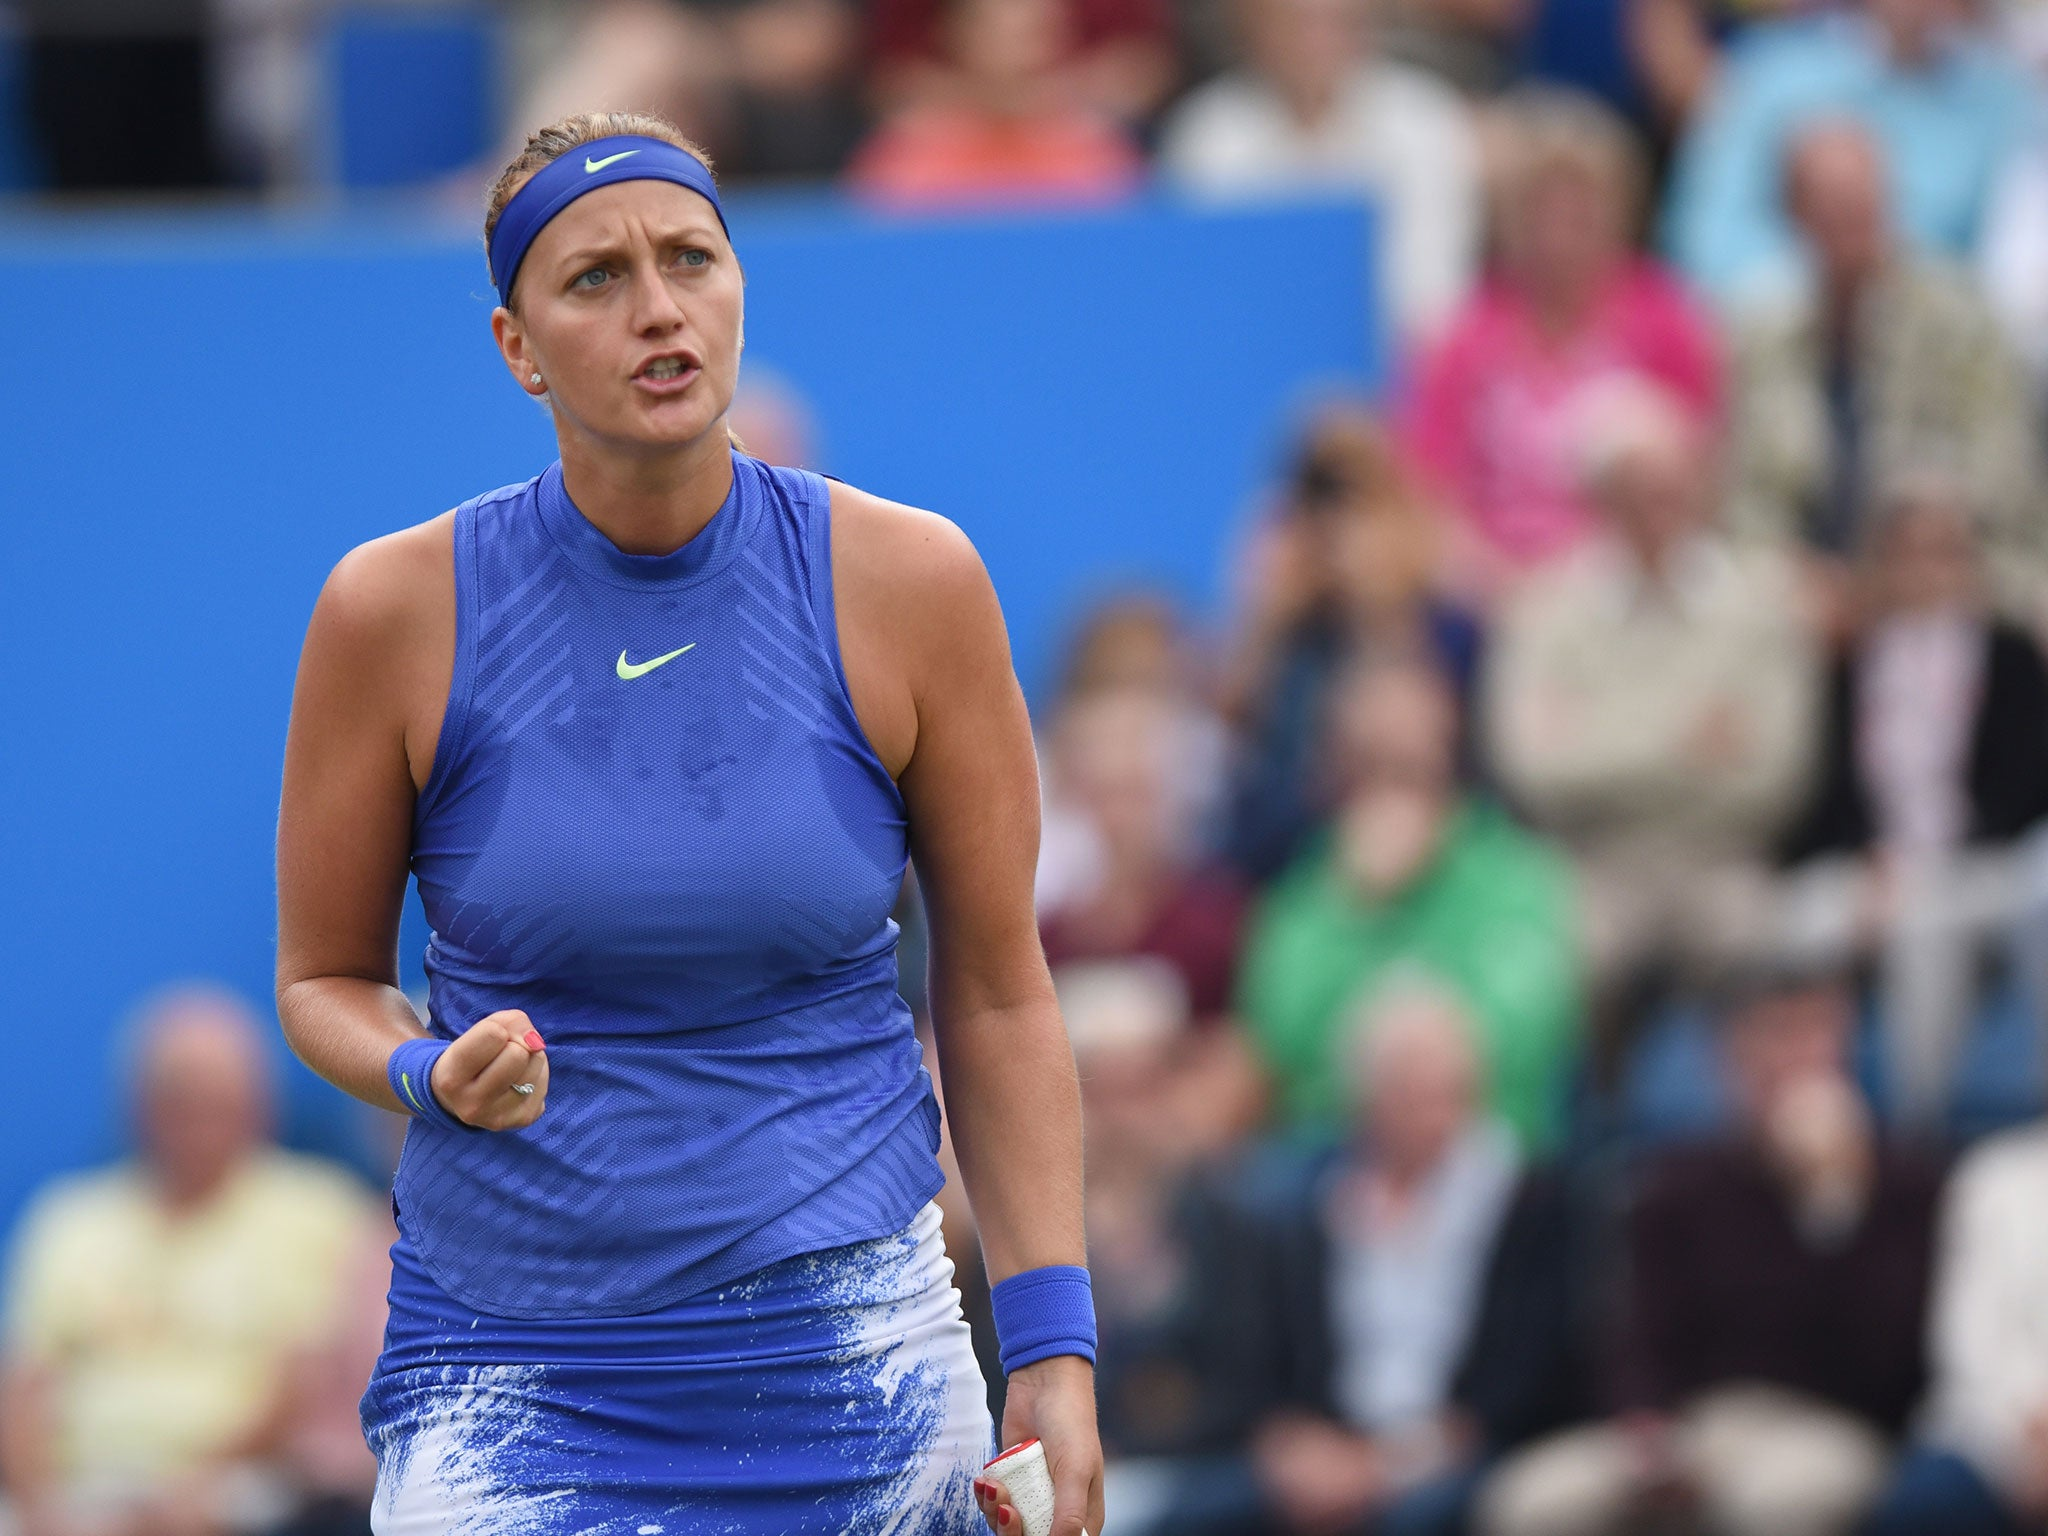 petra kvitova qualifies for first final since horrific knife attack the independent. Black Bedroom Furniture Sets. Home Design Ideas